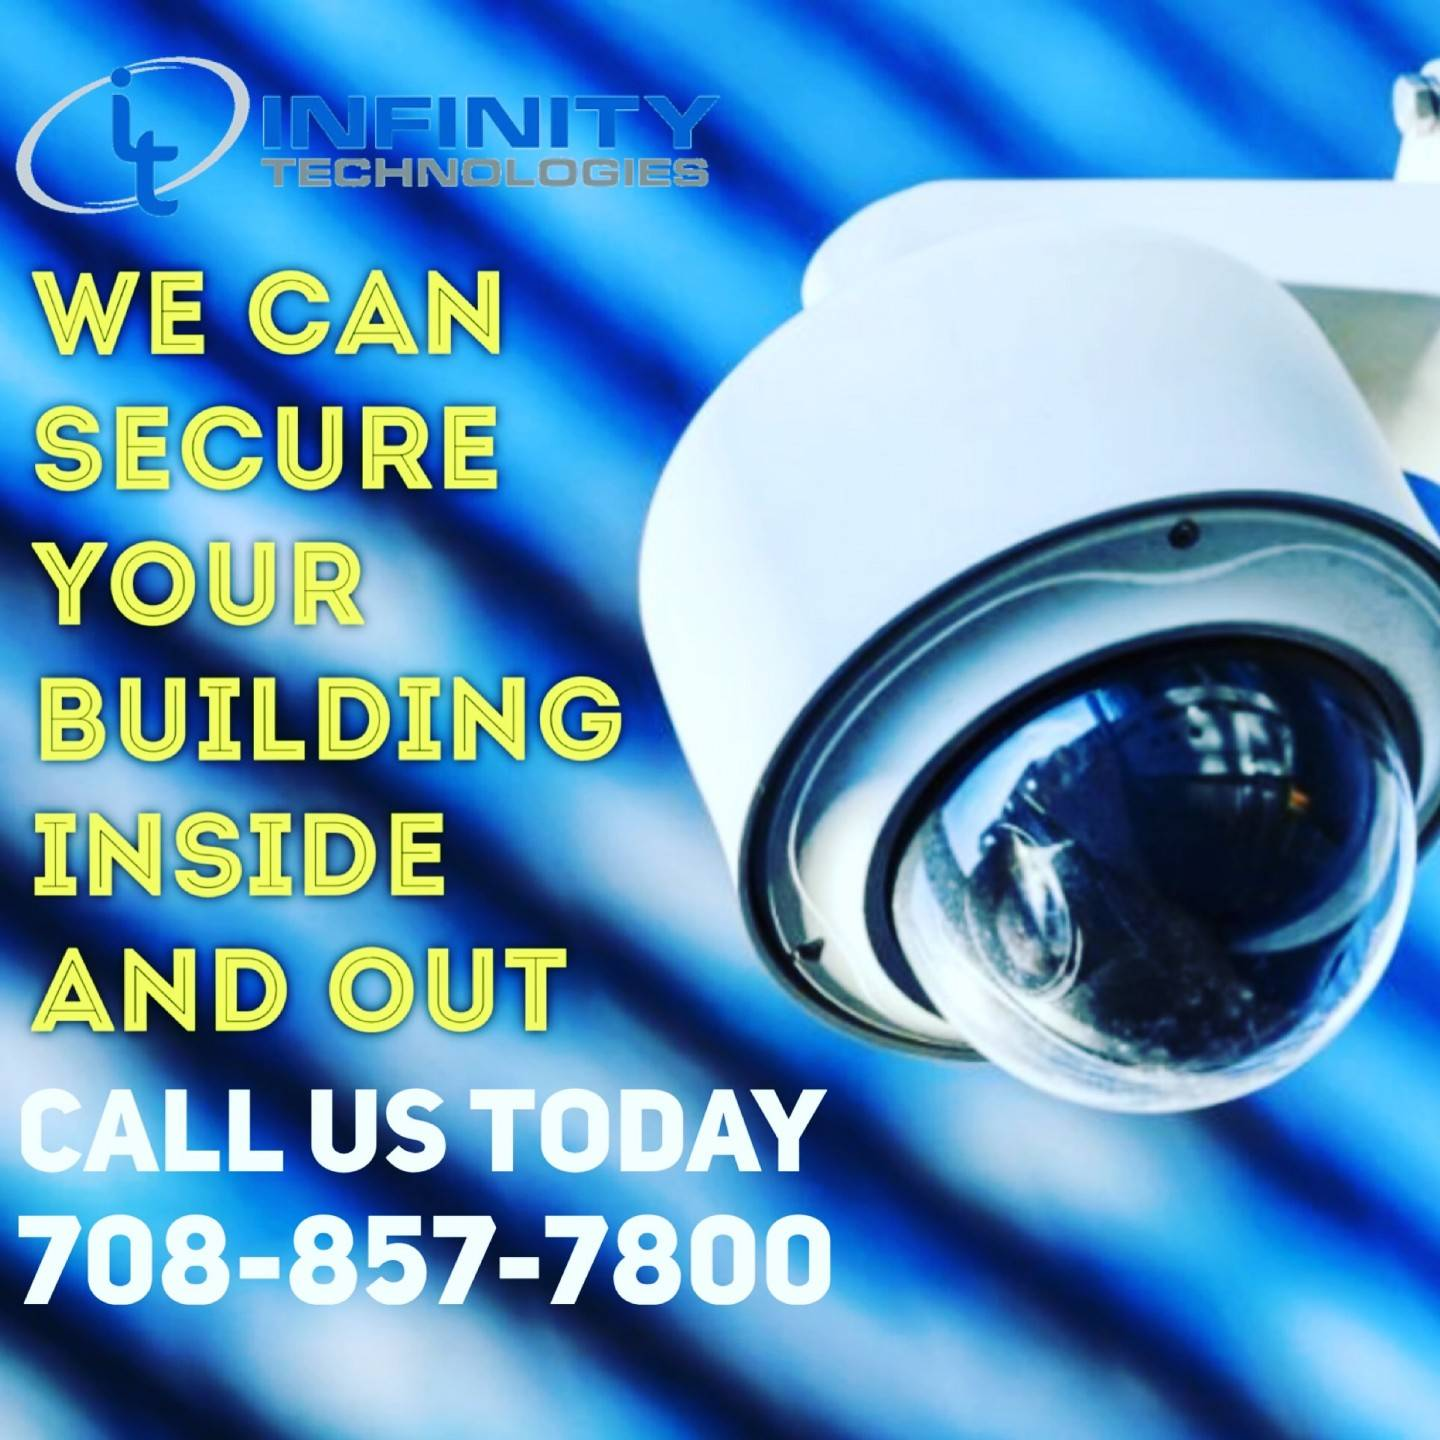 Installing surveillance cameras and CCTV's for over 20 years in the Chicagoland area. Call us for a free consultation for your business or commercial building.